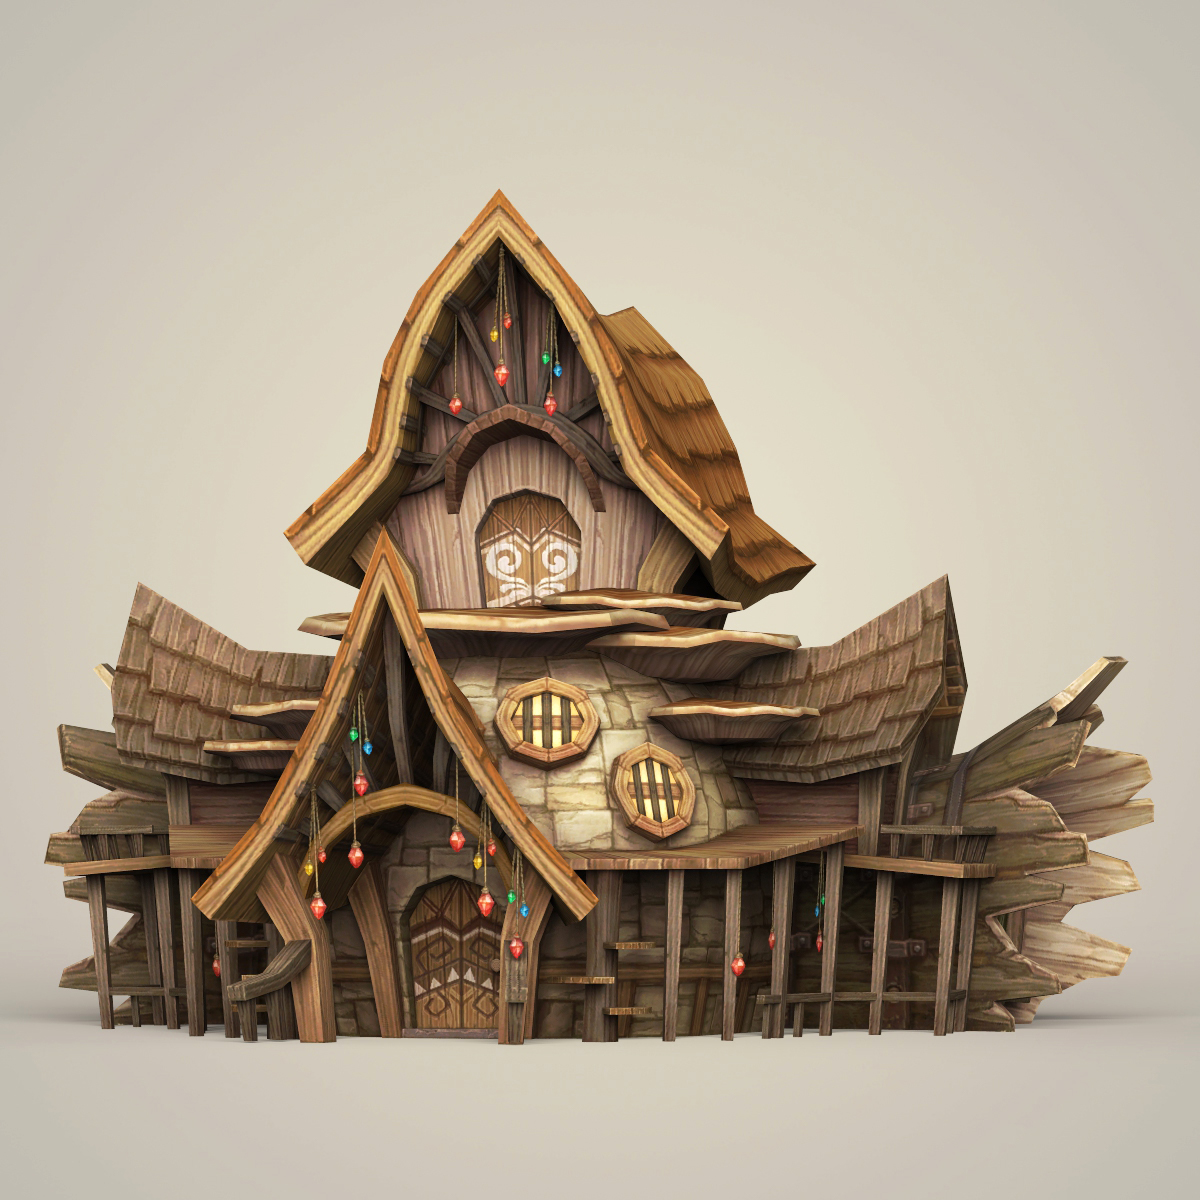 Virtual 3d Home Design Game: Game Ready Fantasy Wooden Hut By Gamingarts